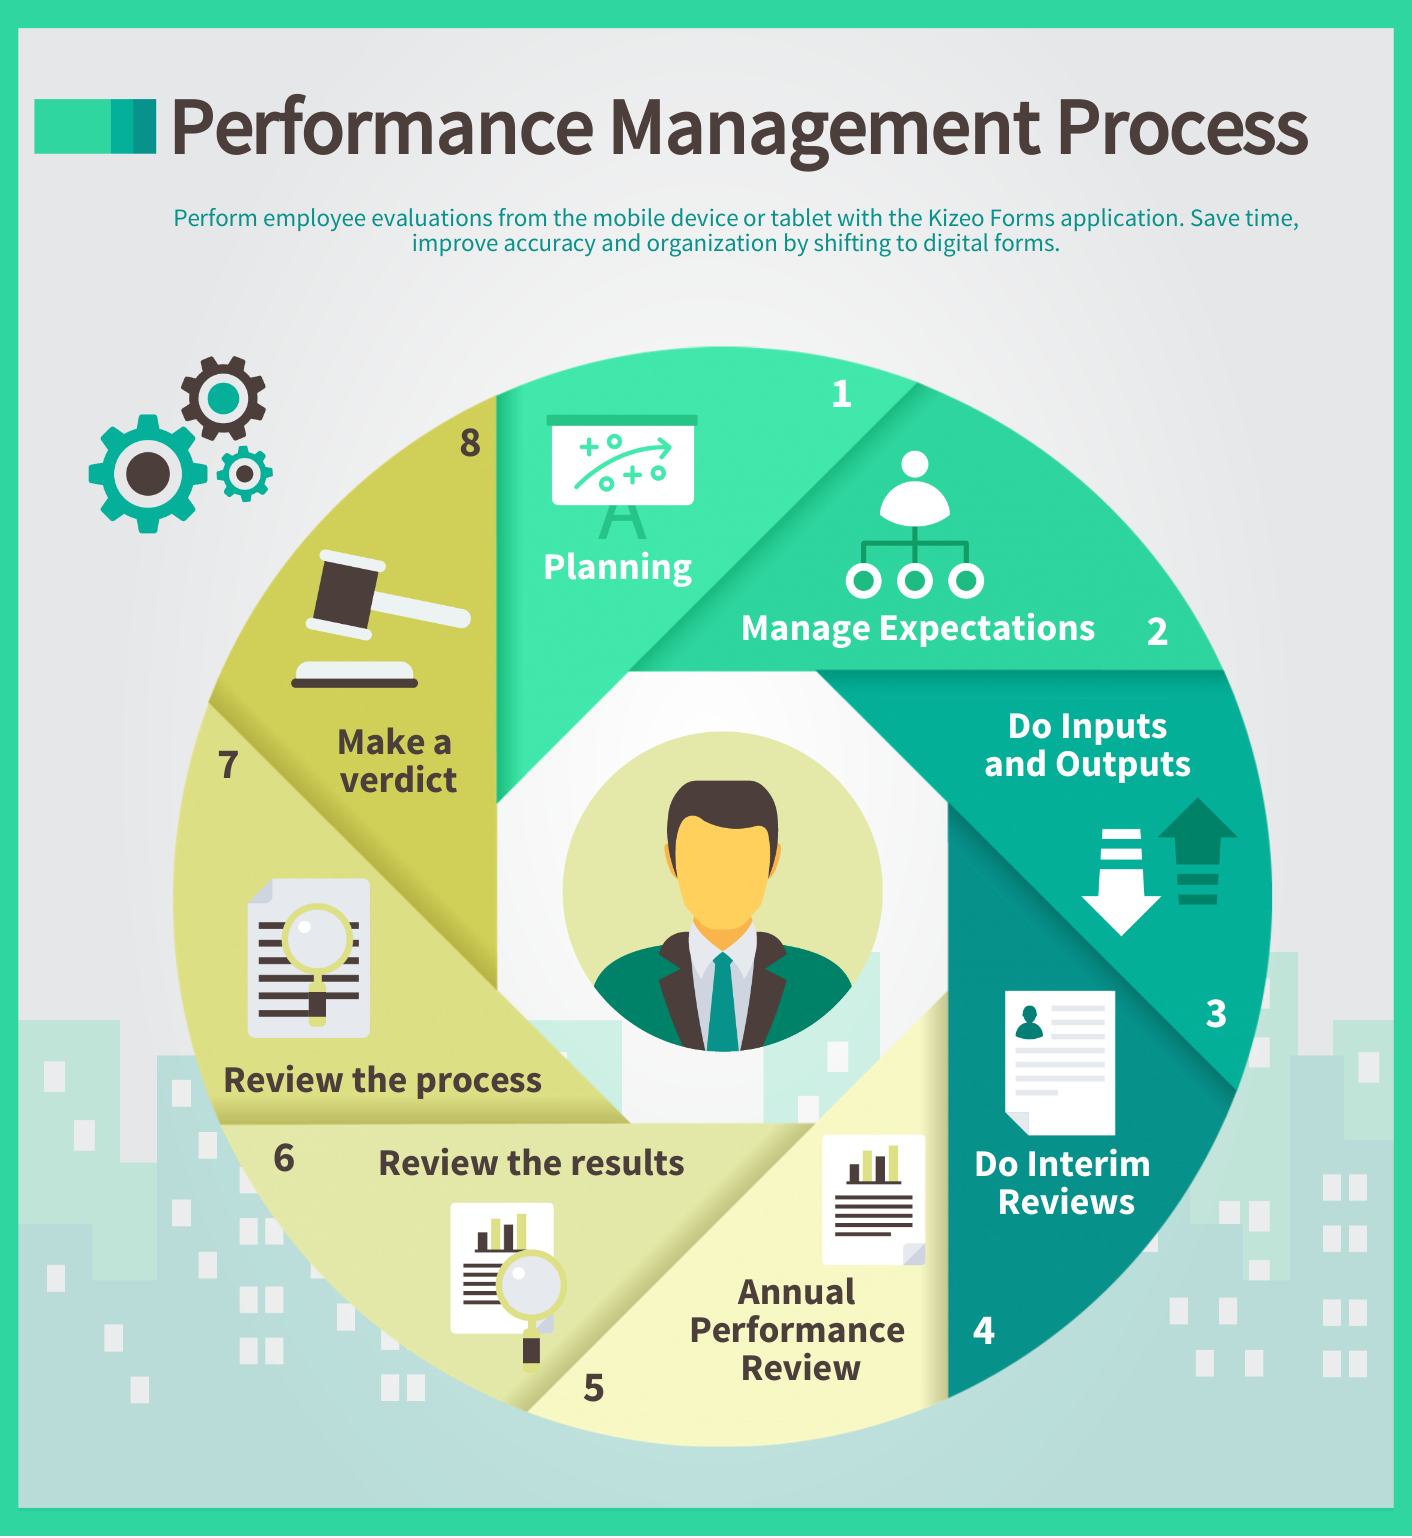 Conduct Employee Evaluations: Employee Performance Evaluations With The Kizeo Forms